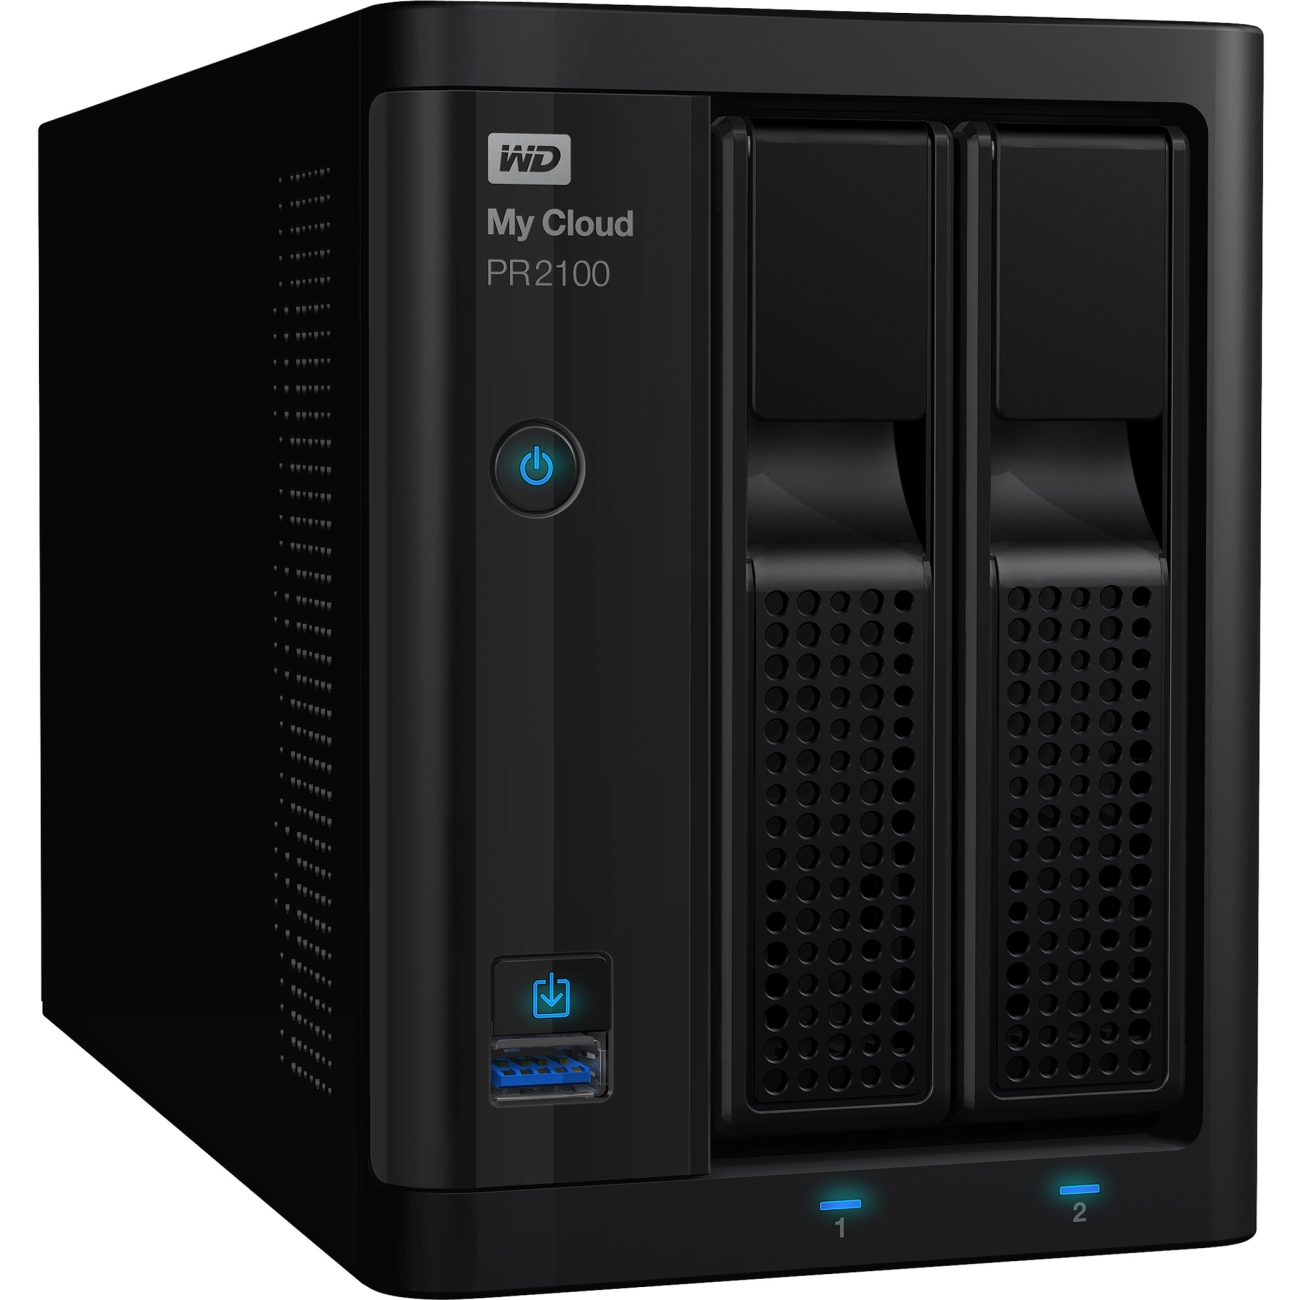 Wd 12tb My Cloud Pr2100 Pro Series Media Server With Transcoding, Nas - Network Attached Storage - Intel Pentium N3710 Quad-core [4 Core] 1.60 Ghz - 2 X Total Bays - 12 Tb Hdd - 4 (wdbbcl0120jbk-nesn)